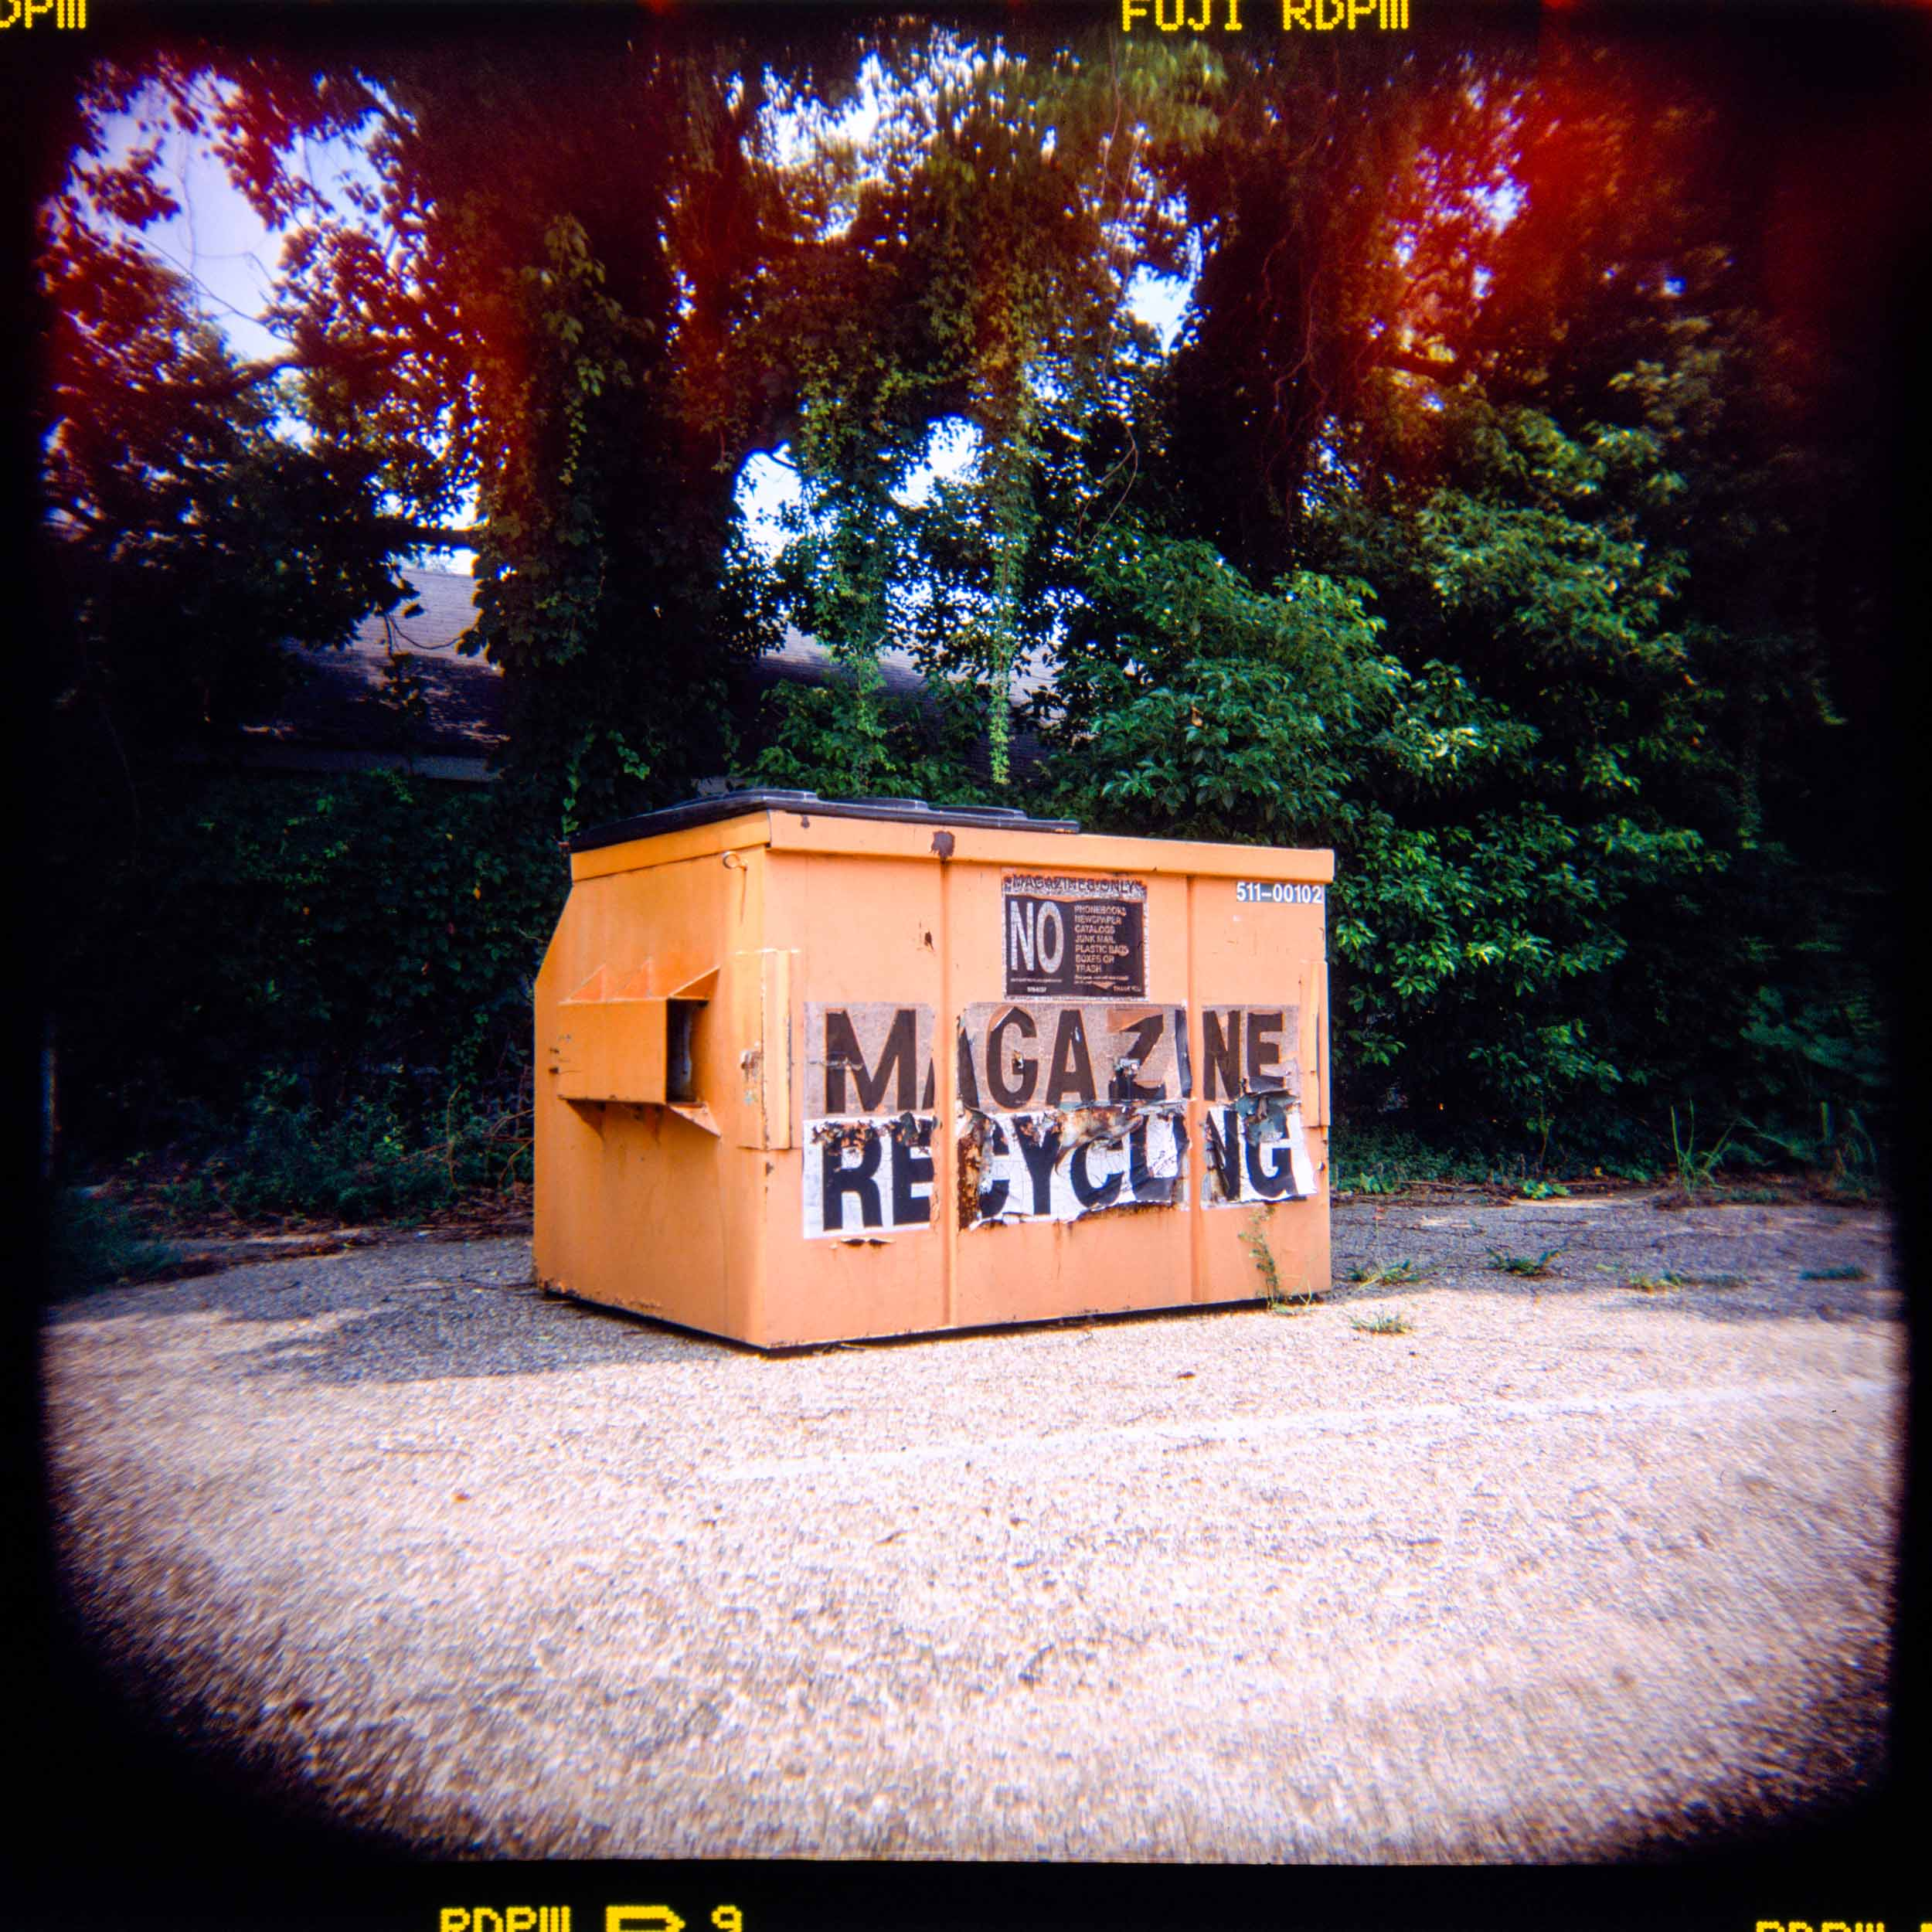 Magazine Recycling, St. Petersburg, FL Holga